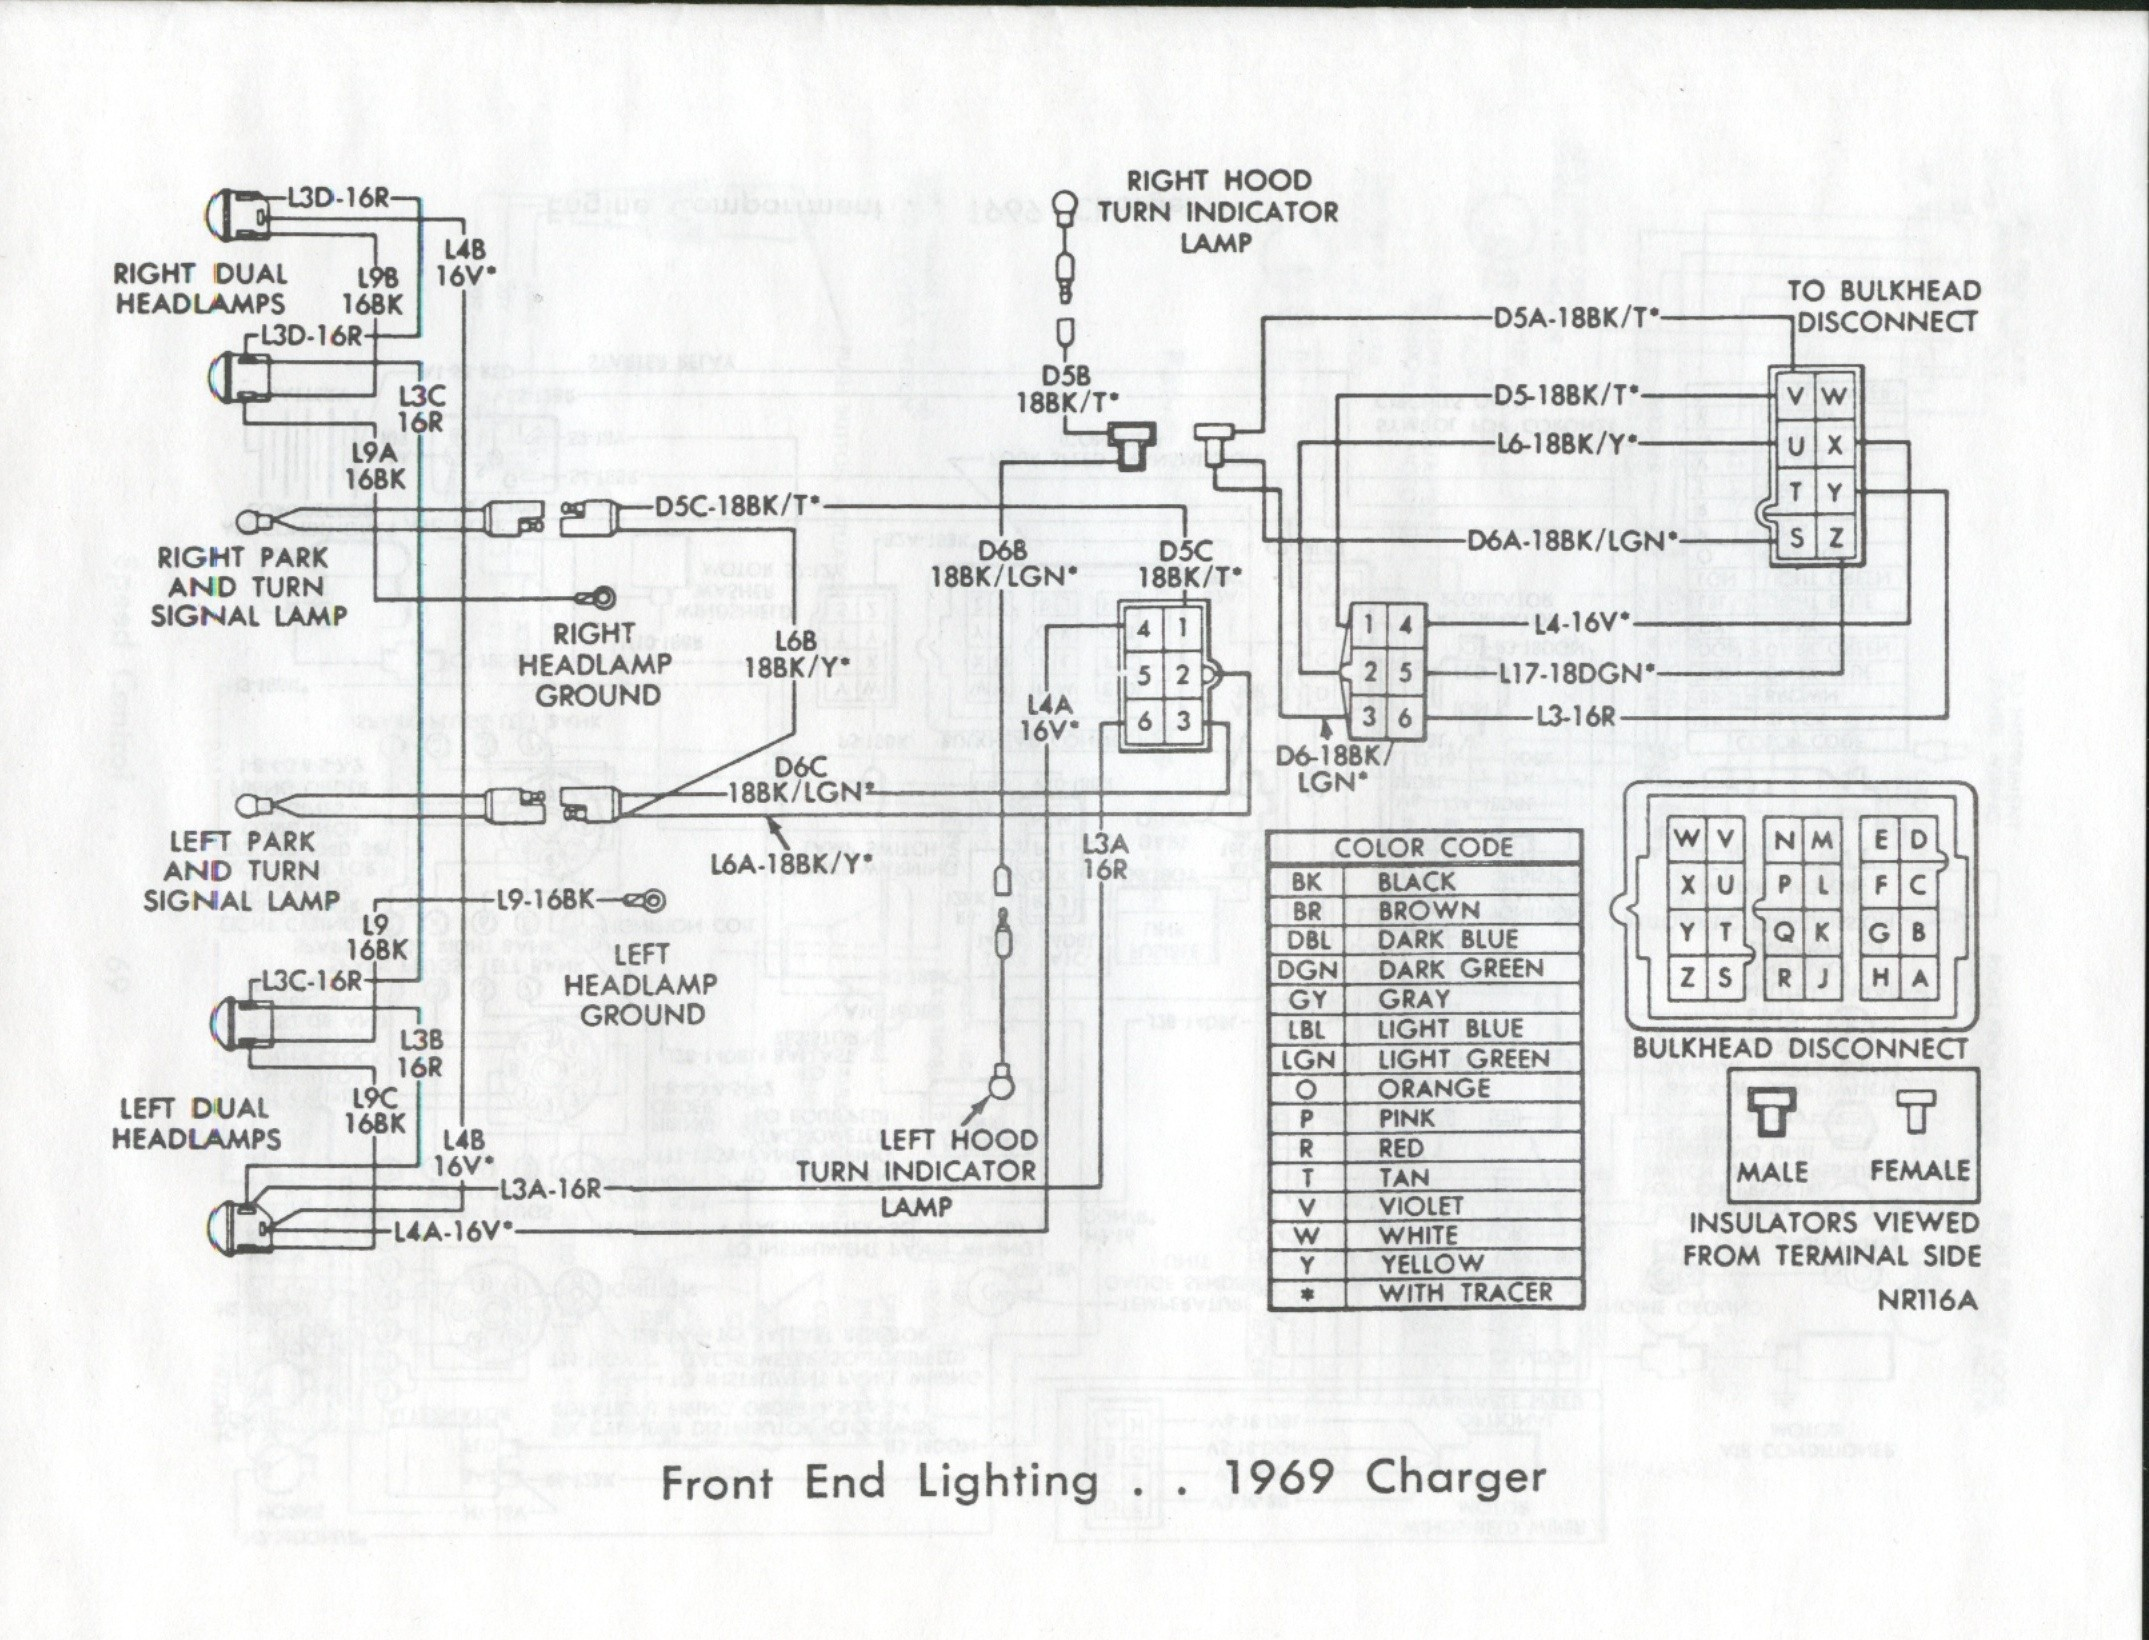 hight resolution of 1972 dodge charger wiring schematic free download diagram